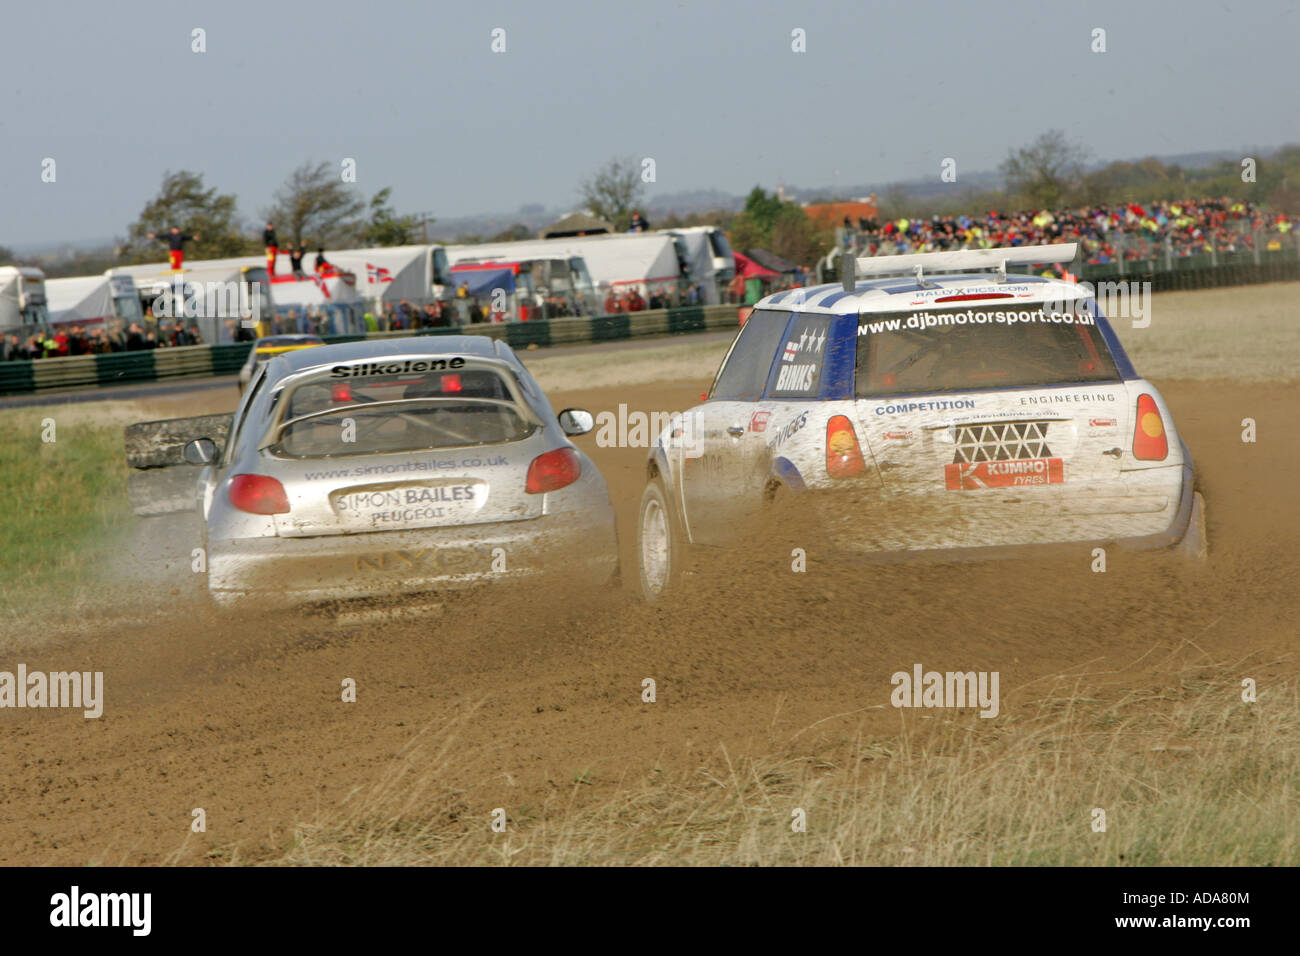 A Mini and peugeot 206 fight it out during a Croft Rallycross meeting Stock Photo